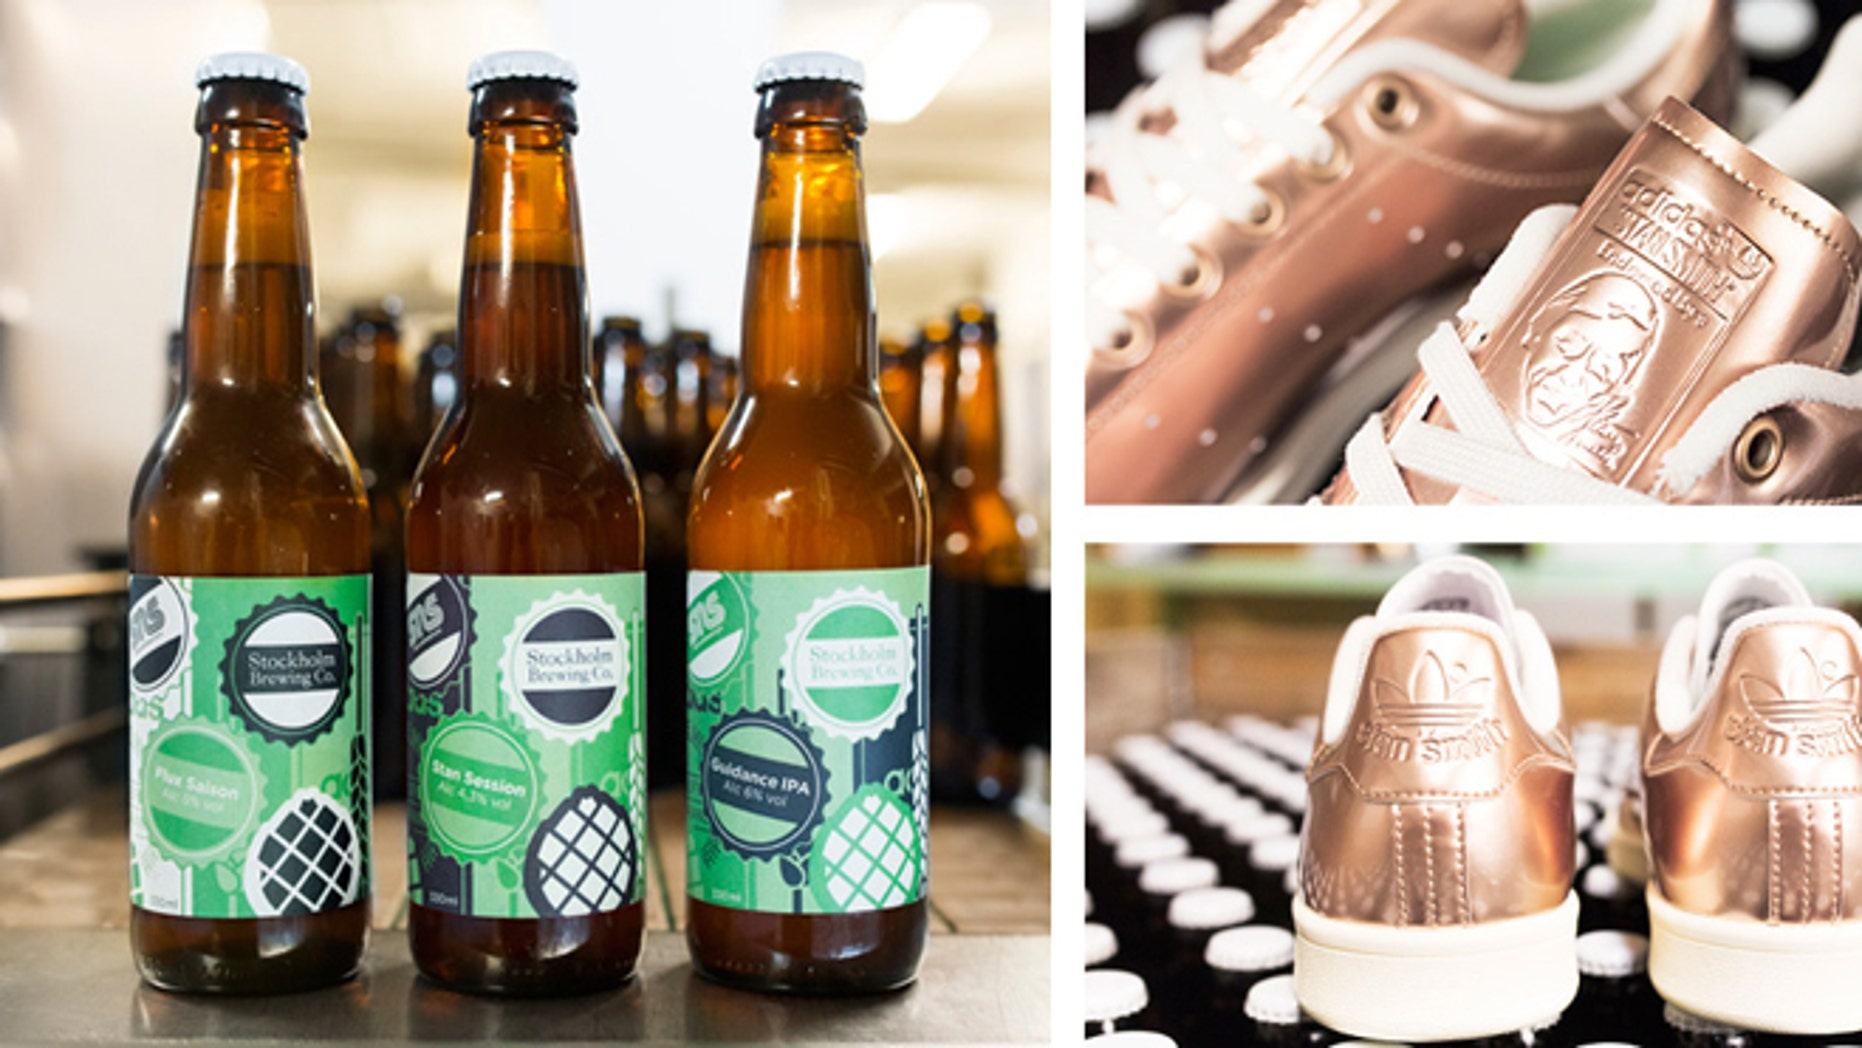 Beer inspired by sneakers inspired by beer.